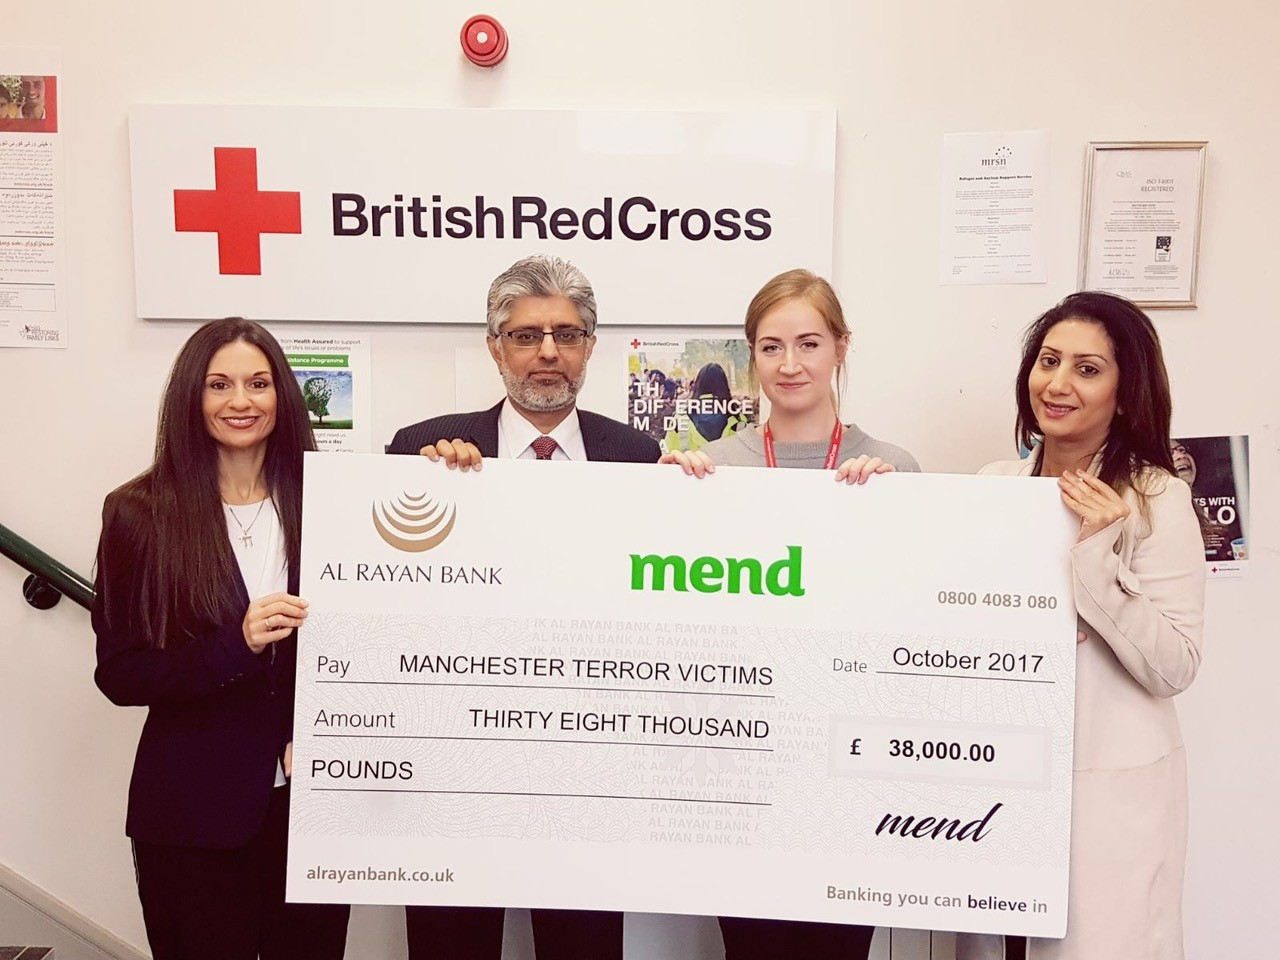 MEND raises £38,000 for the victims of the Manchester Arena terror attack